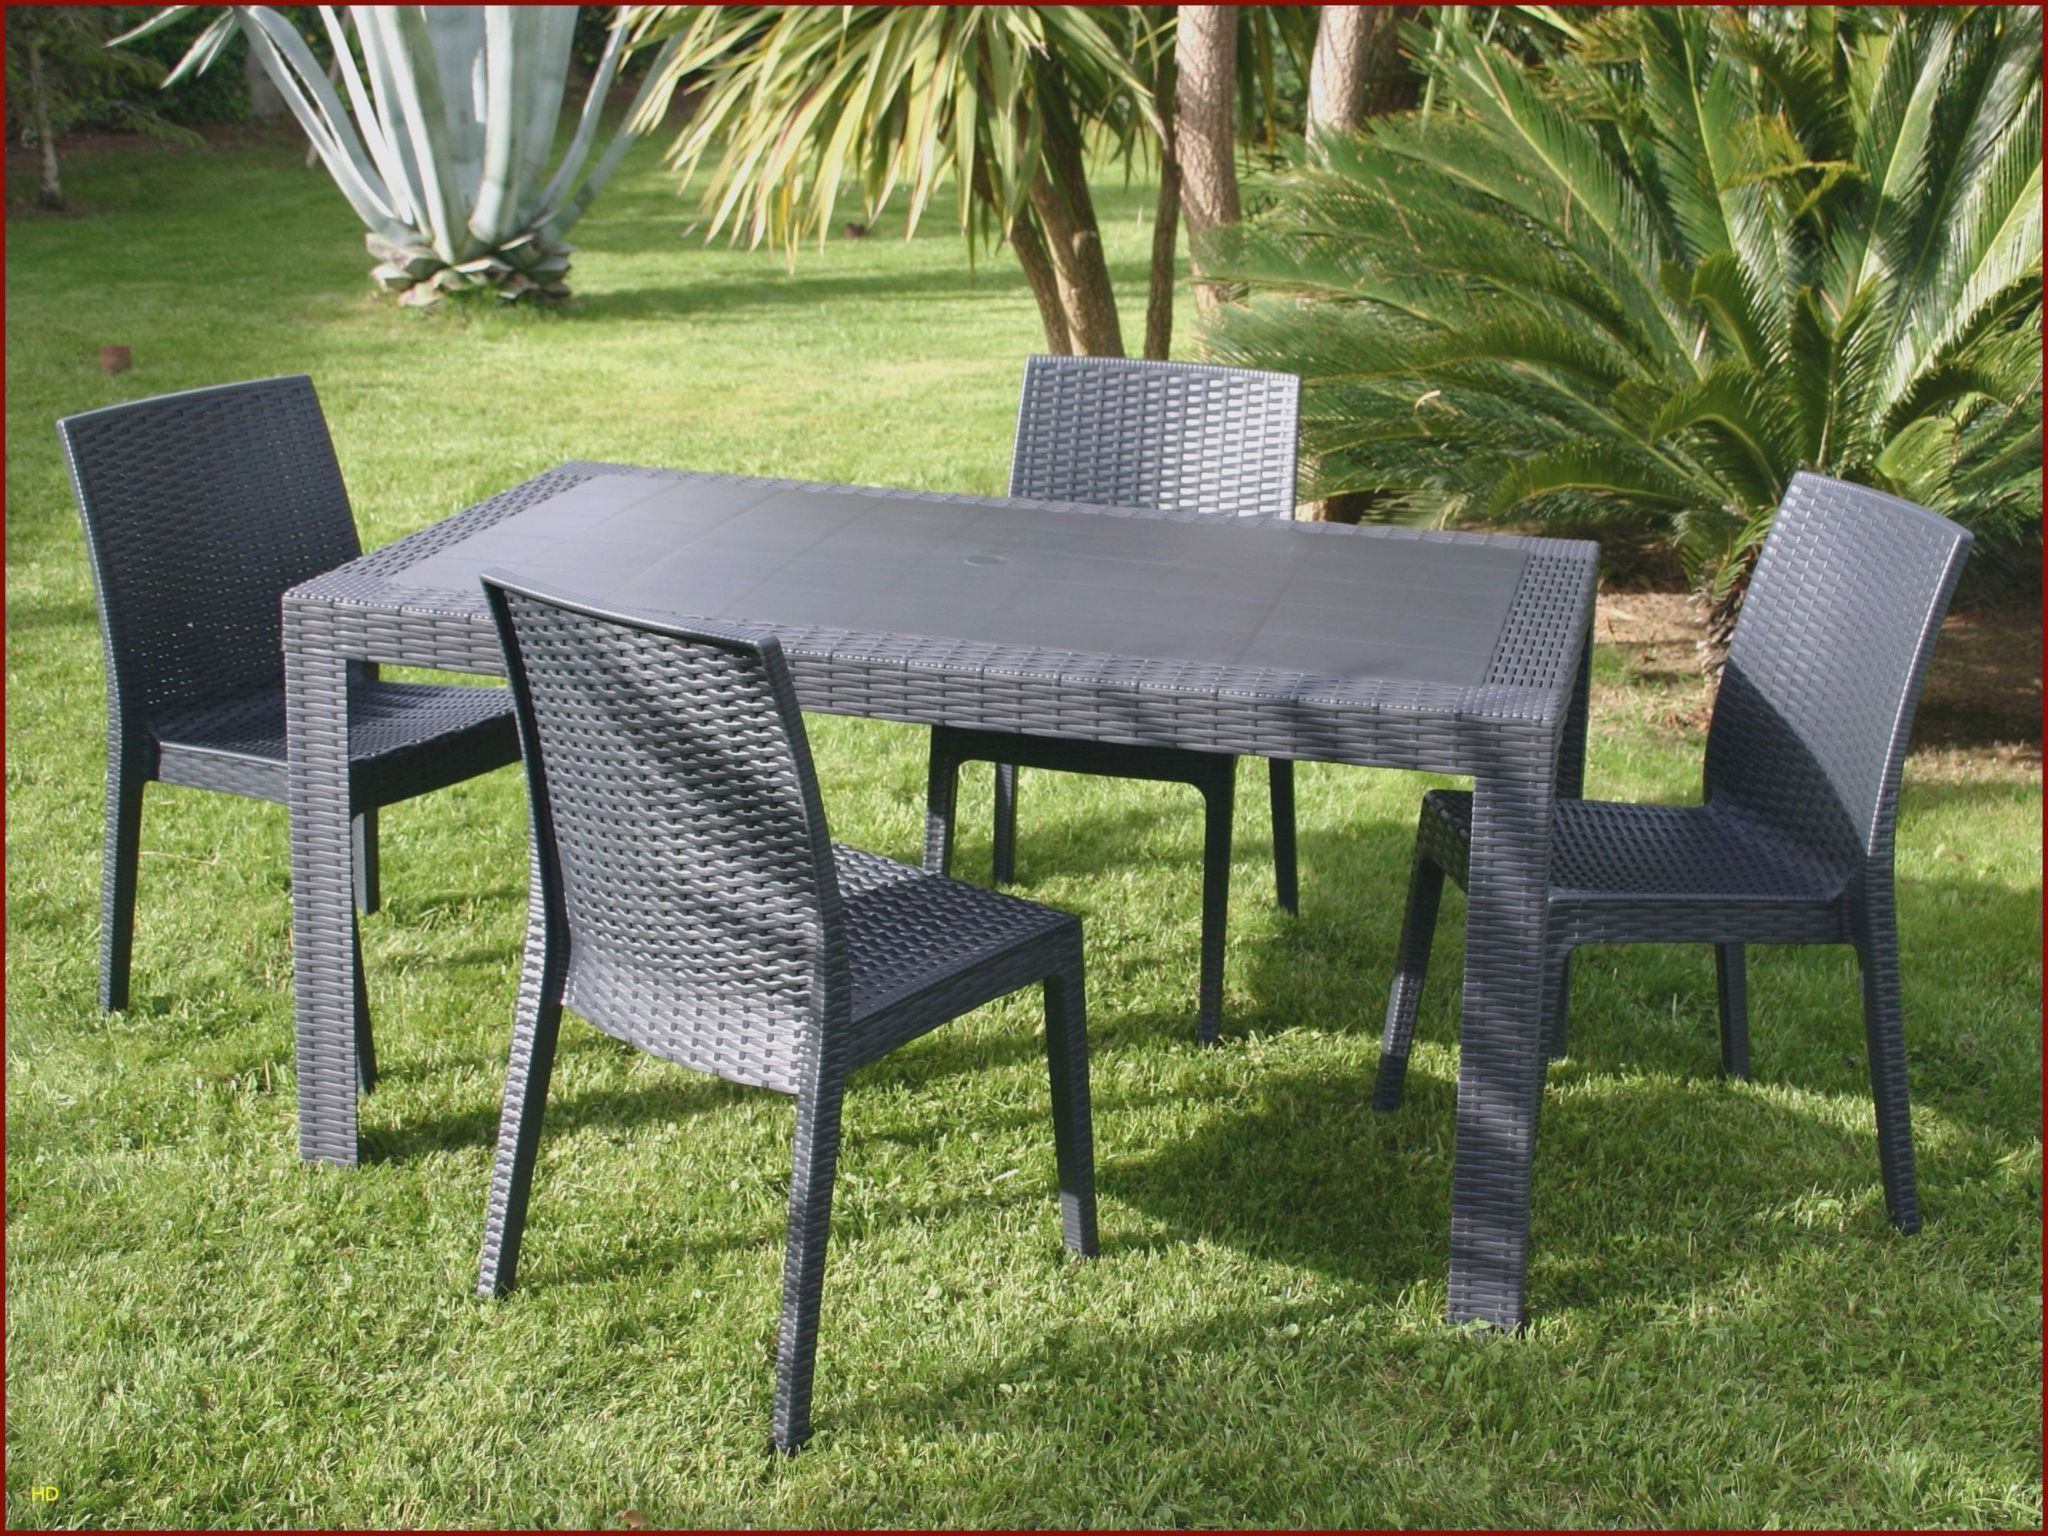 Table De Jardin Acacia Luxe Chaises Luxe Chaise Ice 0d Table Jardin Resine Lovely Of 24 Inspirant Table De Jardin Acacia